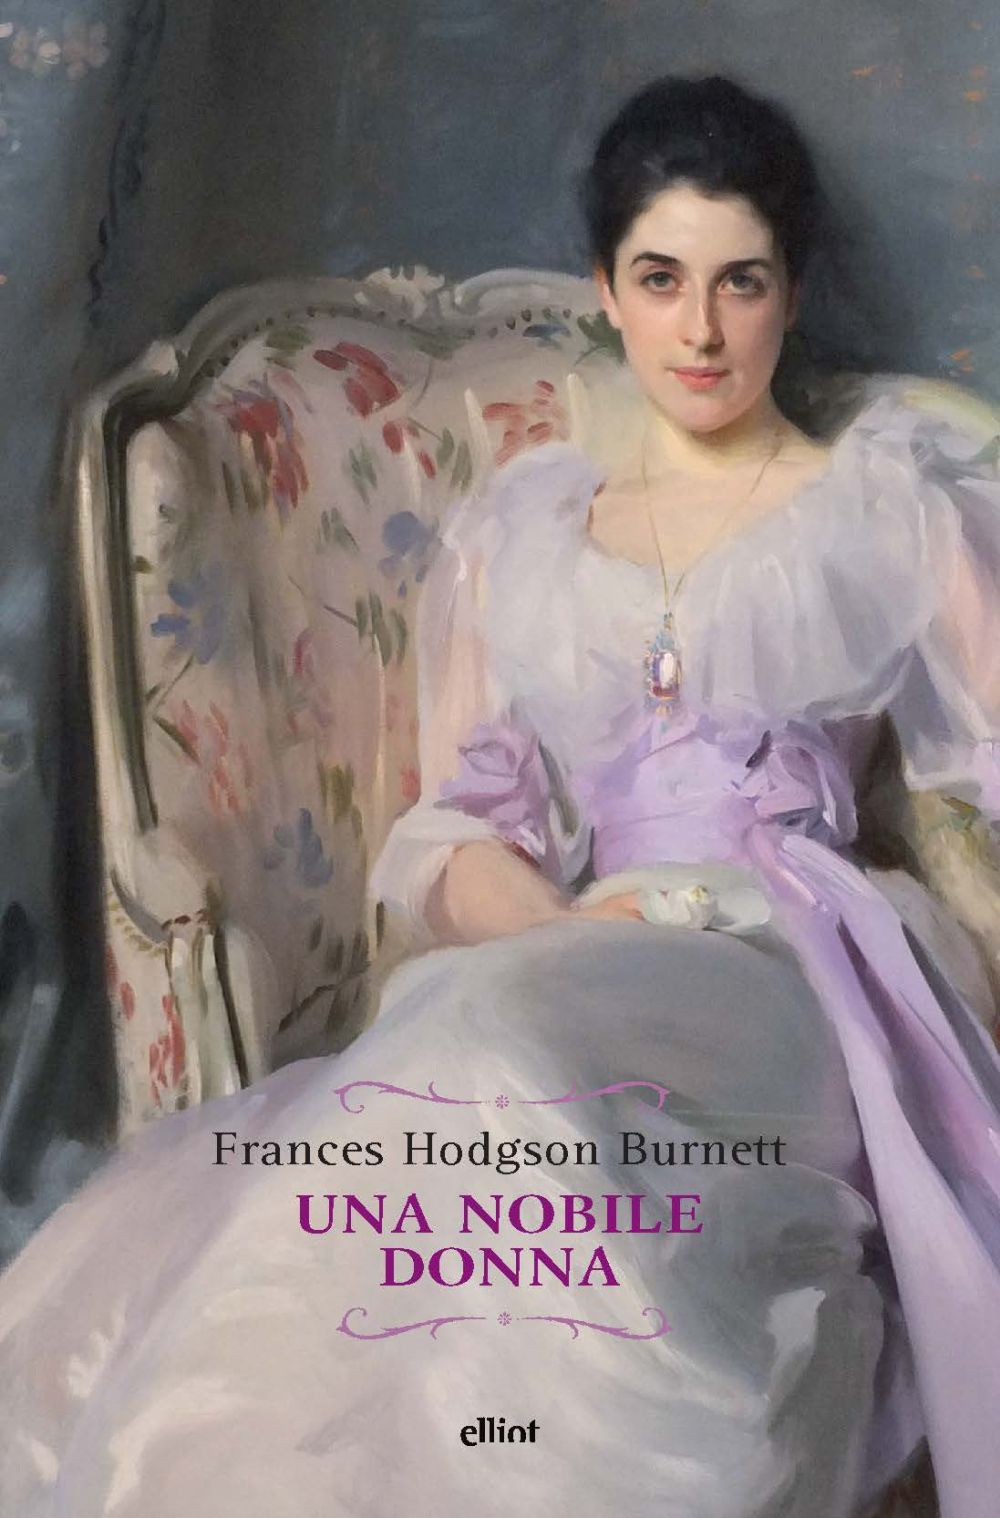 una nobile donna - Burnett Frances H. - 9788869939181